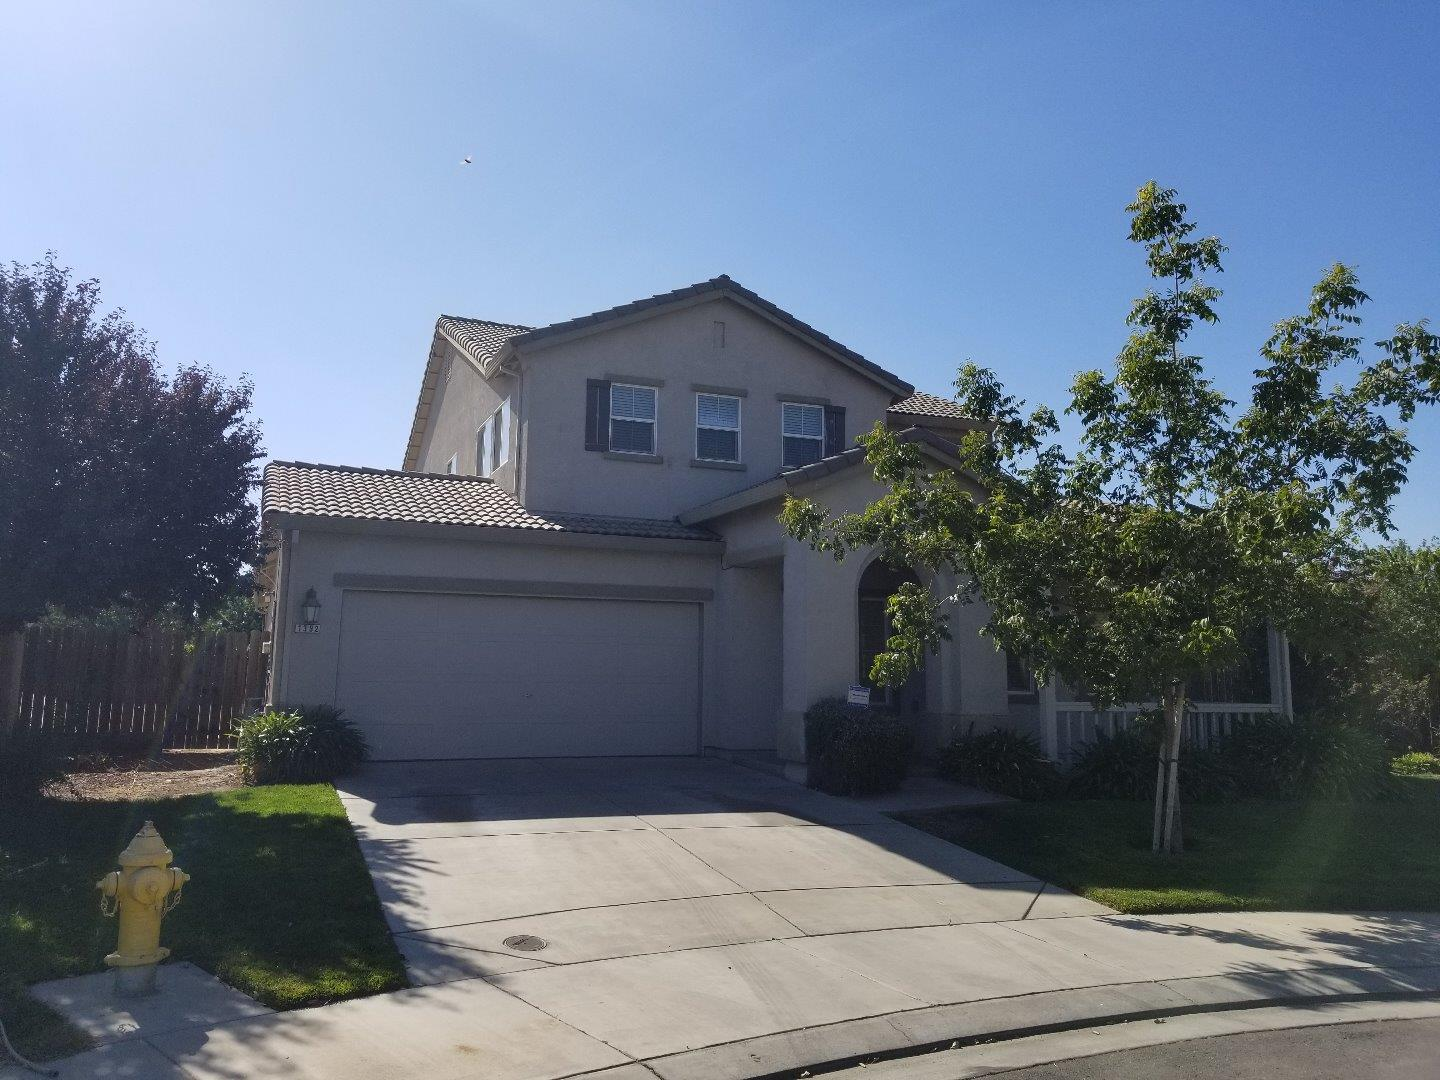 Single Family Home for Sale at 1392 Baxter Court 1392 Baxter Court Merced, California 95348 United States